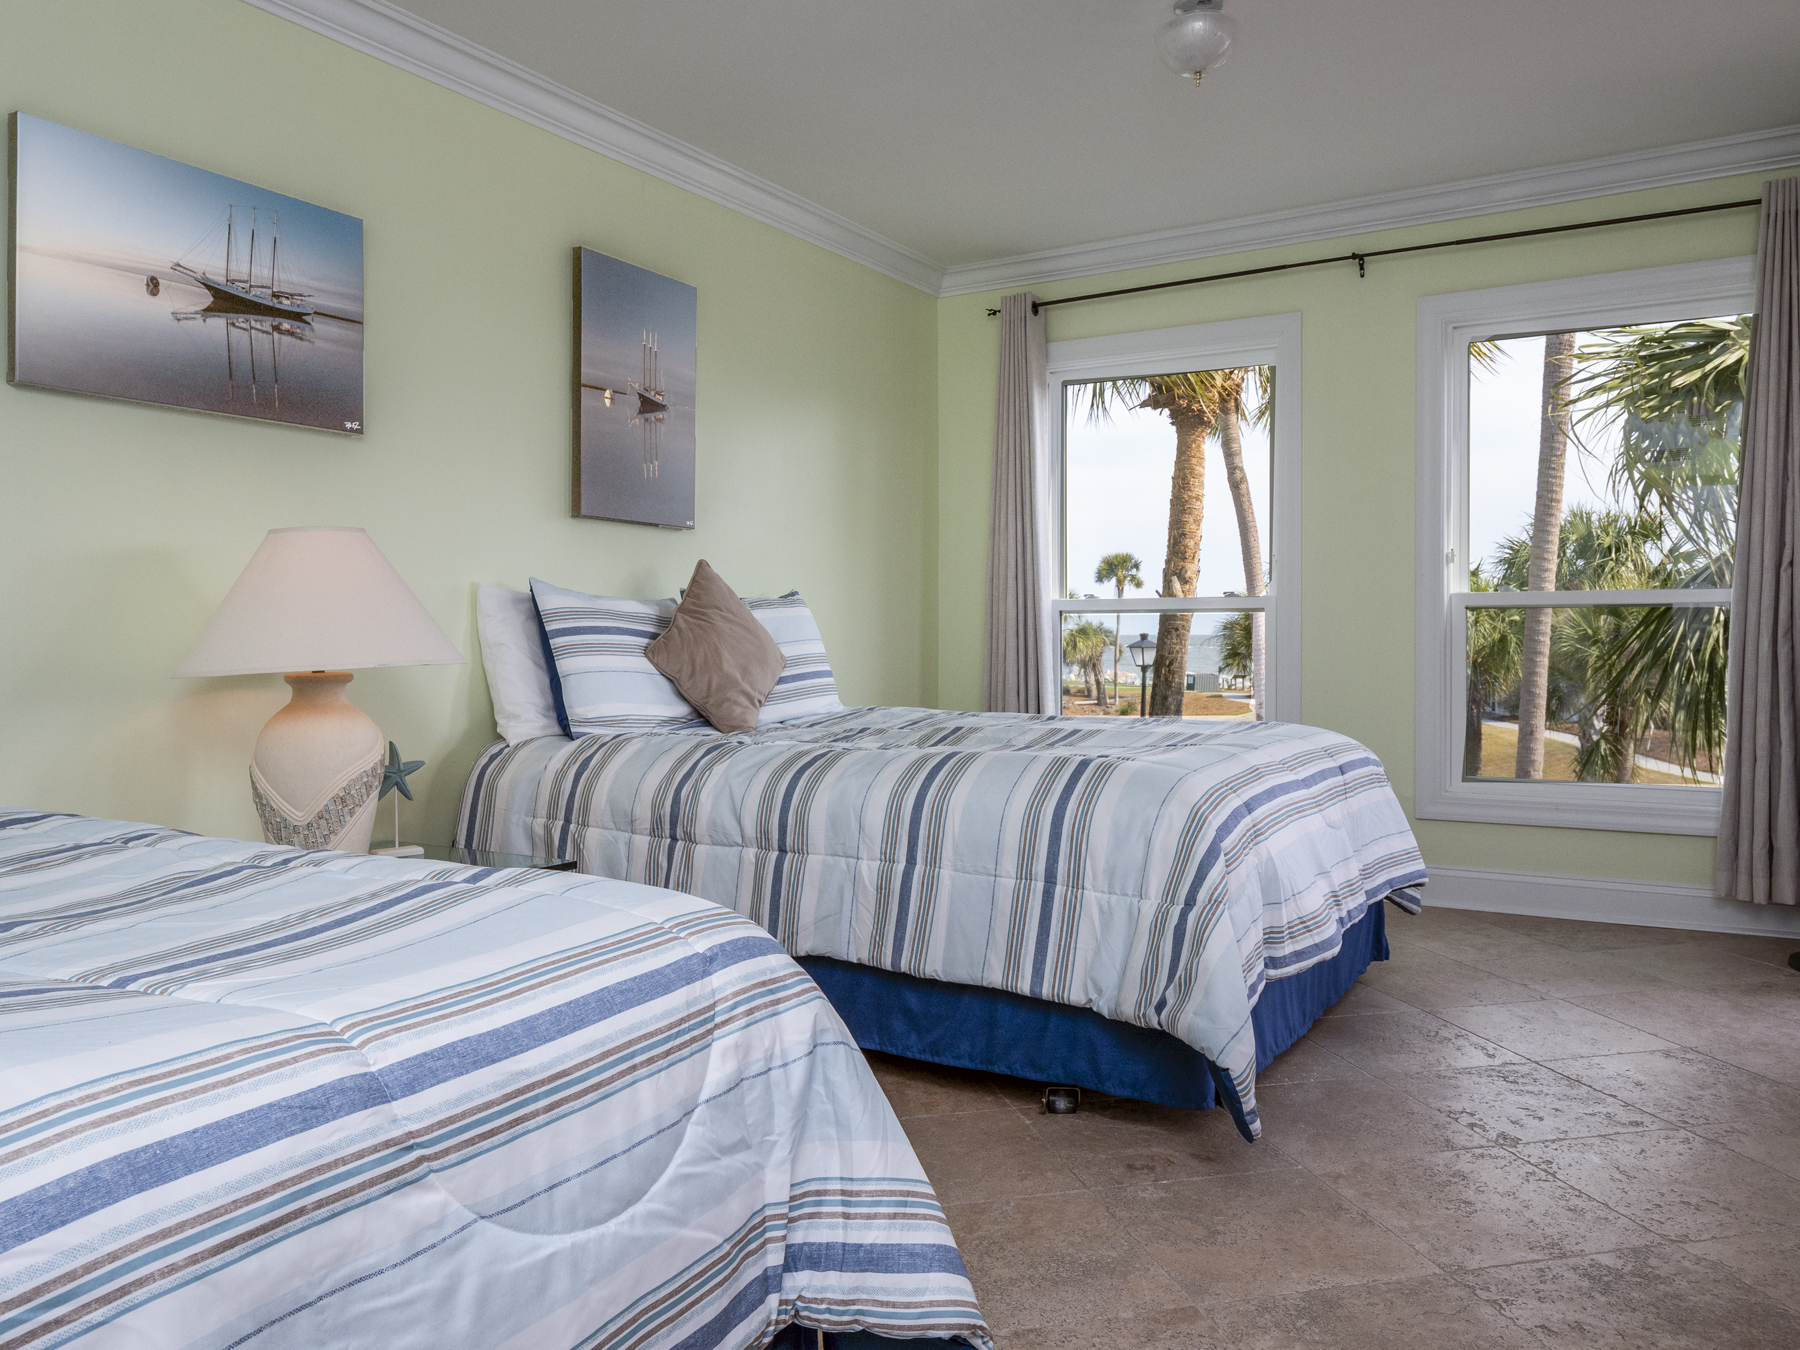 2 Queen beds complete the 2nd bedroom with HDTV and sliding glass doors to the covered deck.